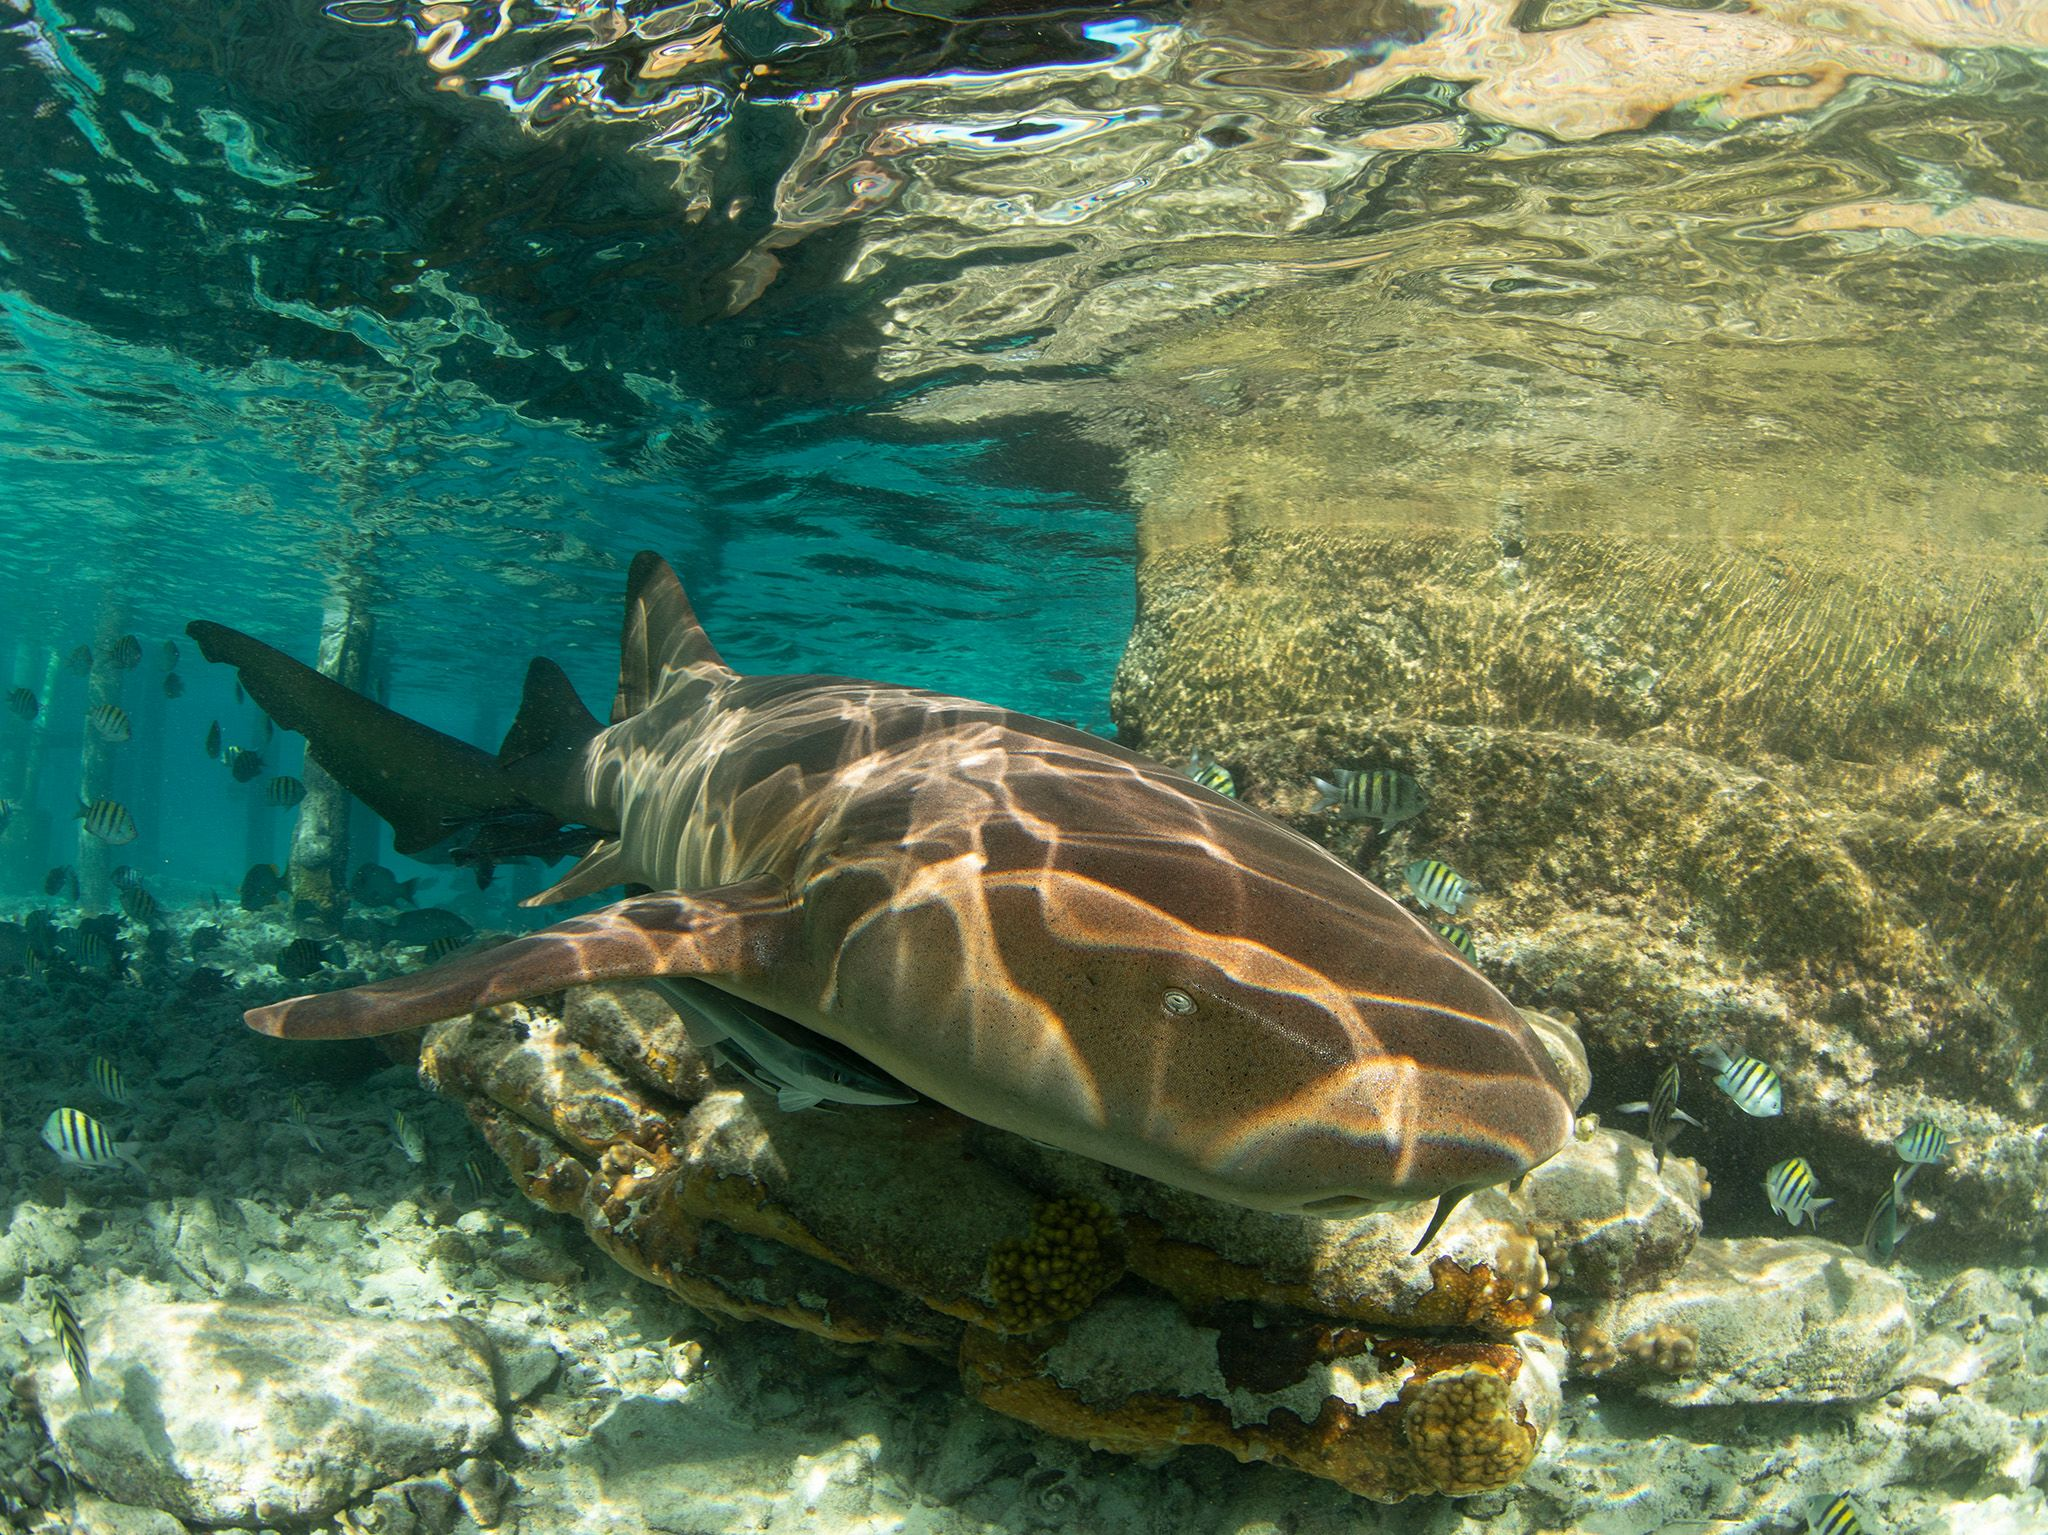 A nurse shark rests on a rock in shallow water near the dock. This is part of Shark Attack Files. [Photo of the day - July 2021]